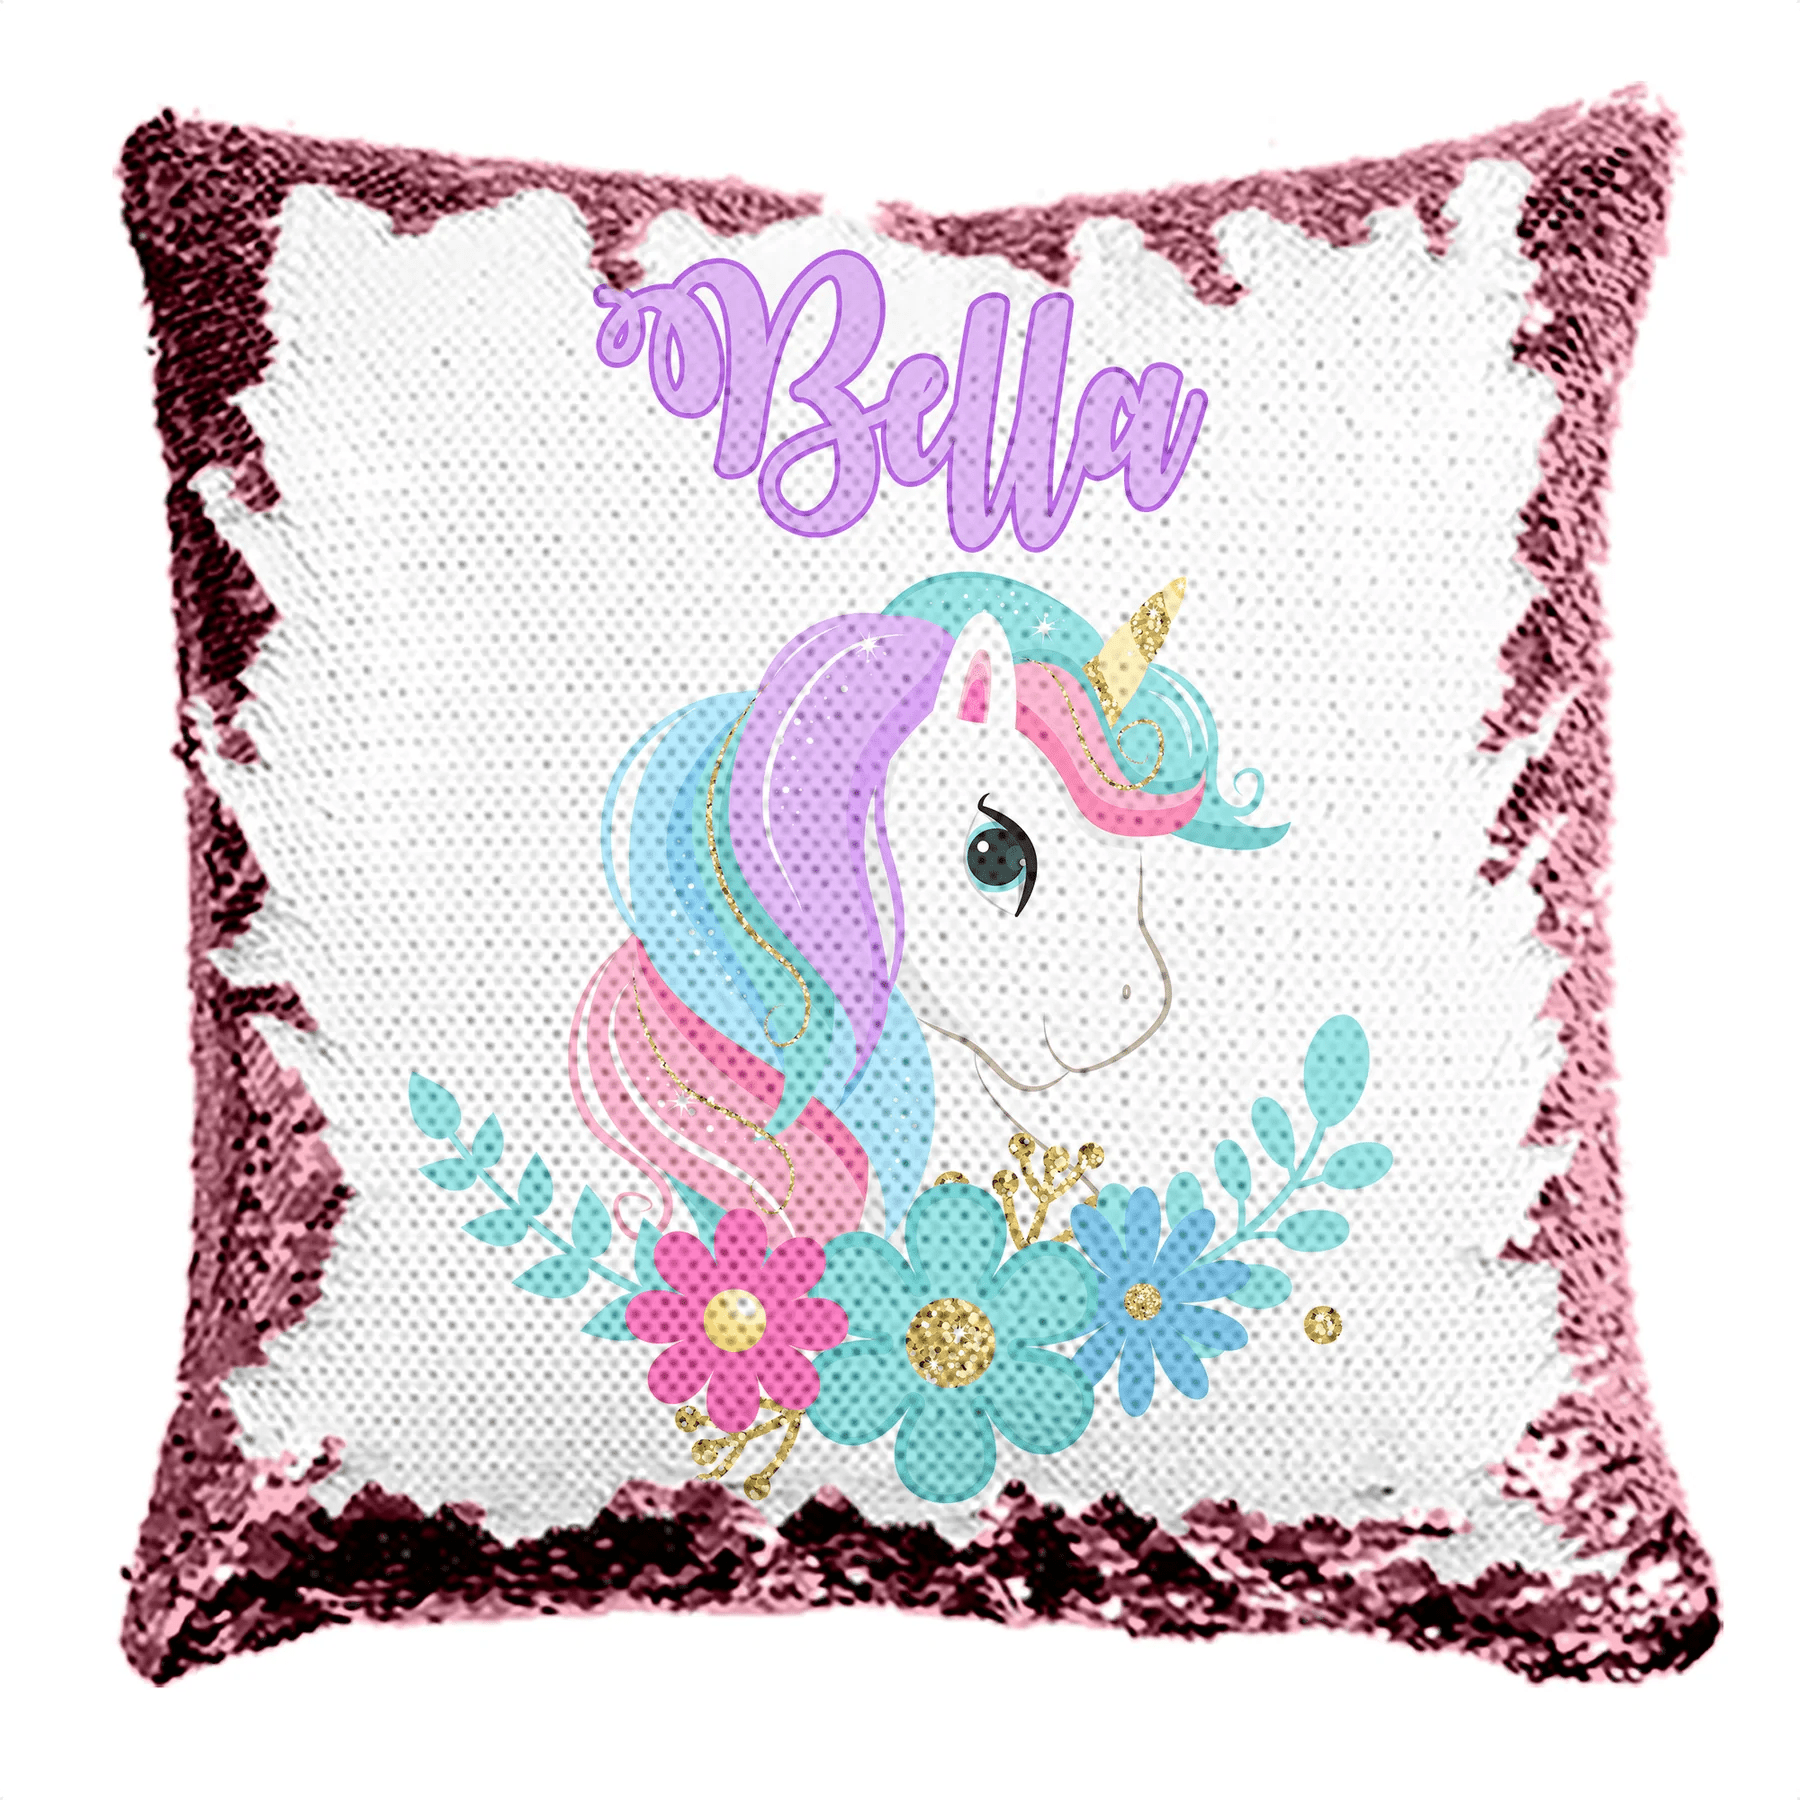 personalized unicorn reversible sequin flip pillow 6 designs and colors to choose from